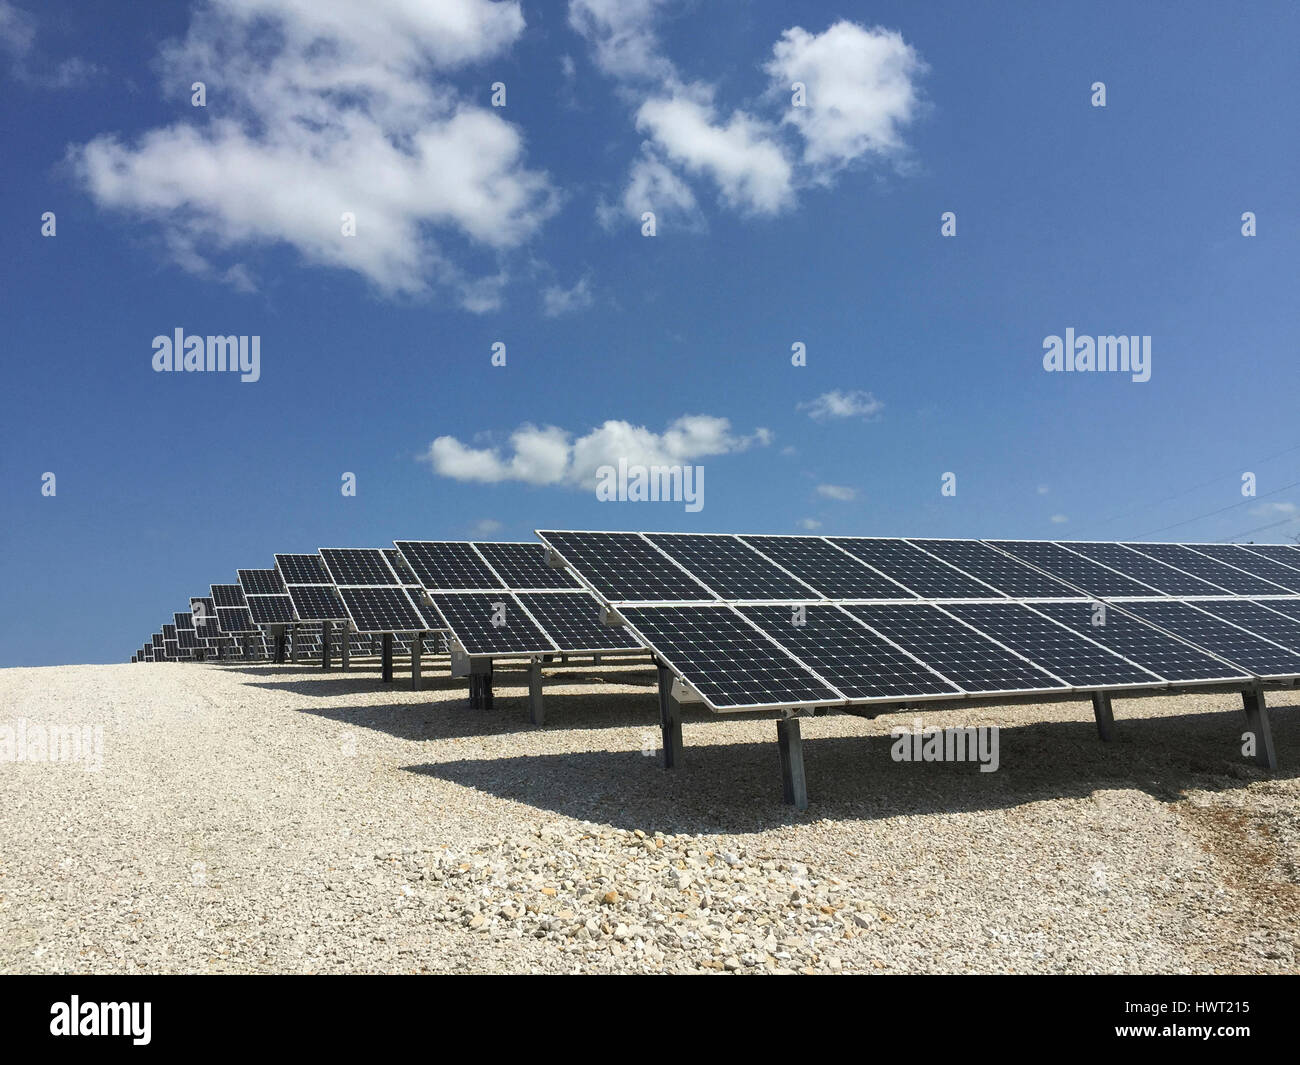 Solar panels on field against blue sky during sunny day - Stock Image